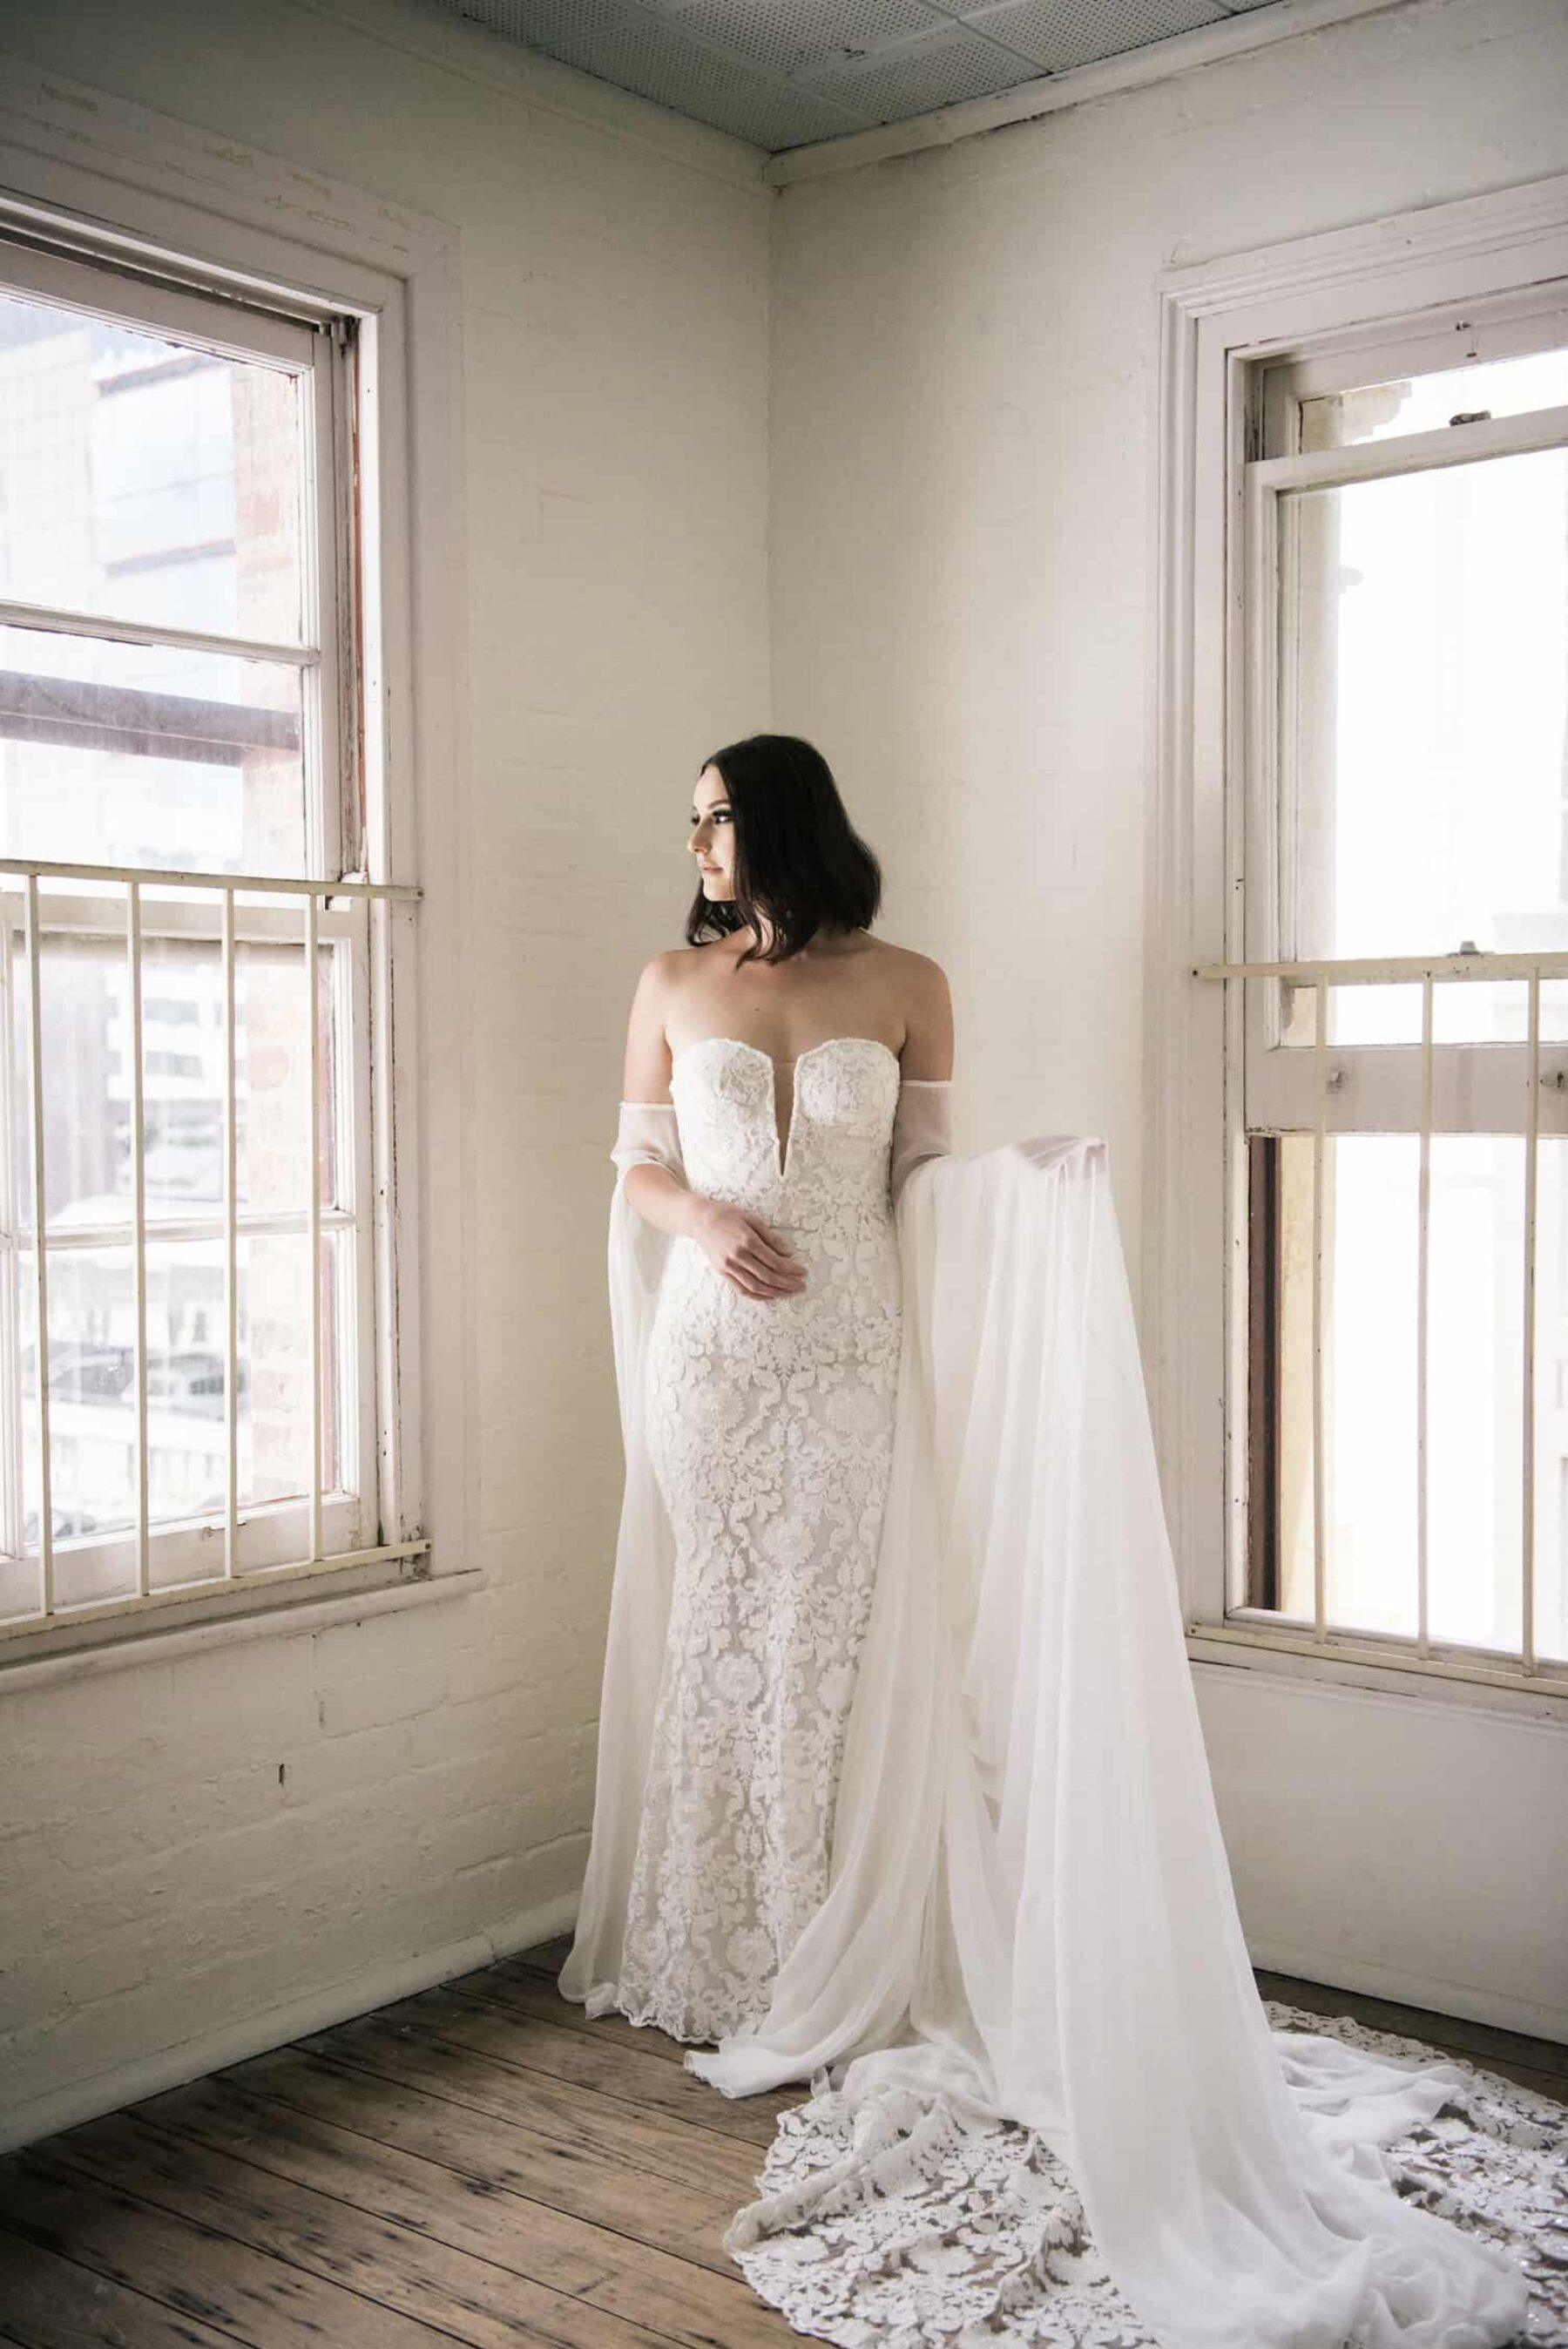 strapless wedding dress with sheer cape